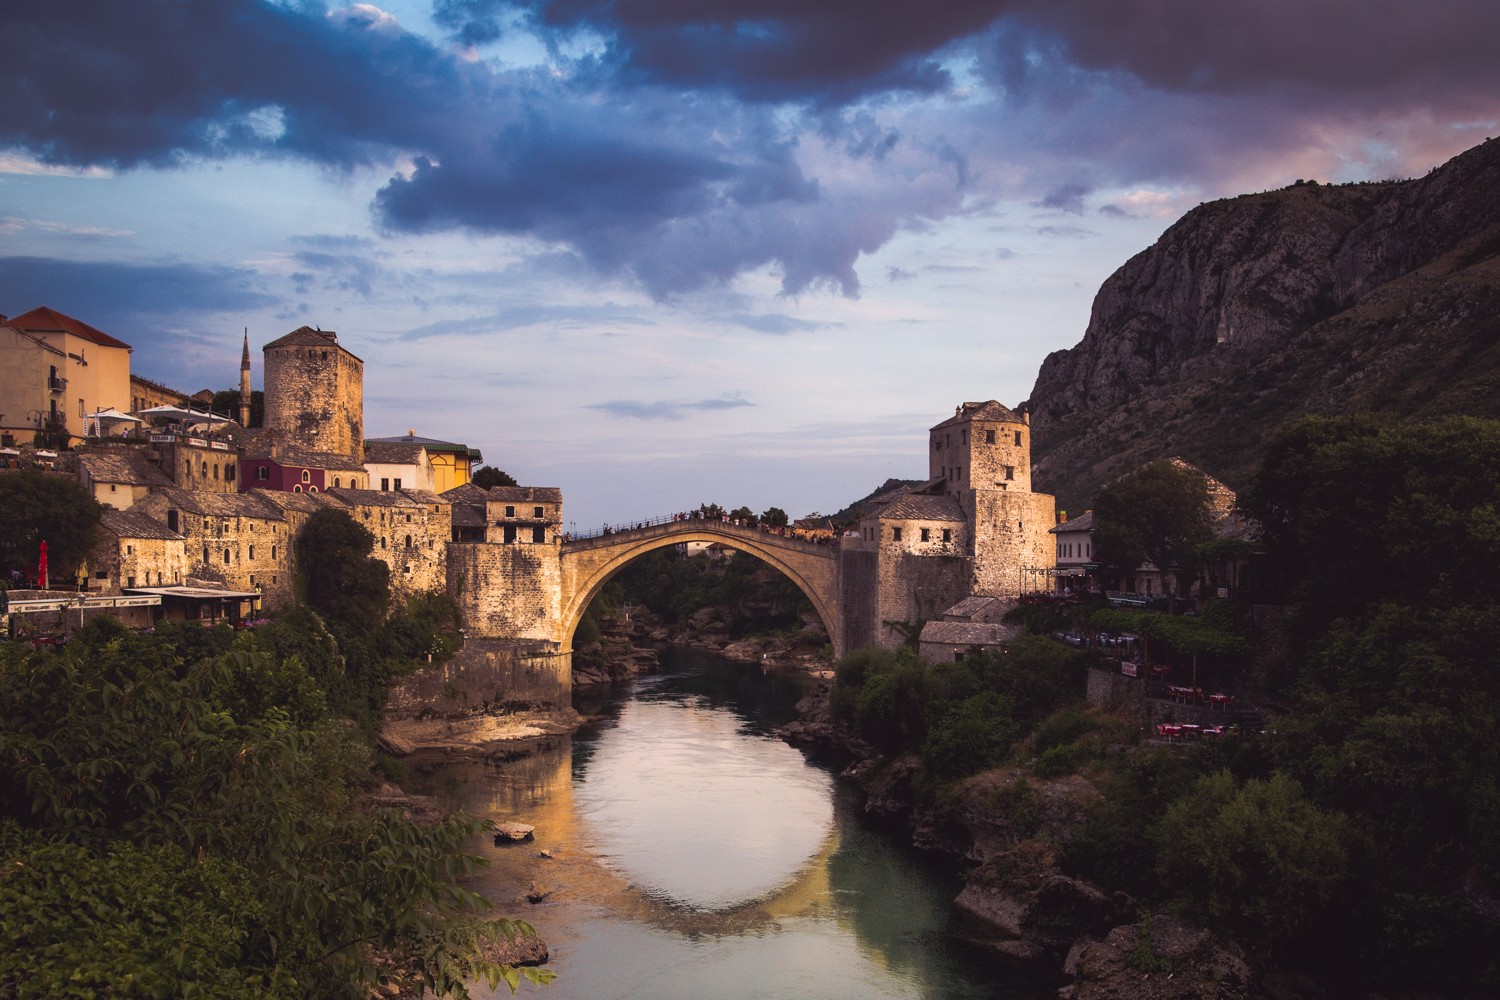 Mostar and Stari Most (Old Bridge) from the grounds of Koski Mehmed Pasha Mosque